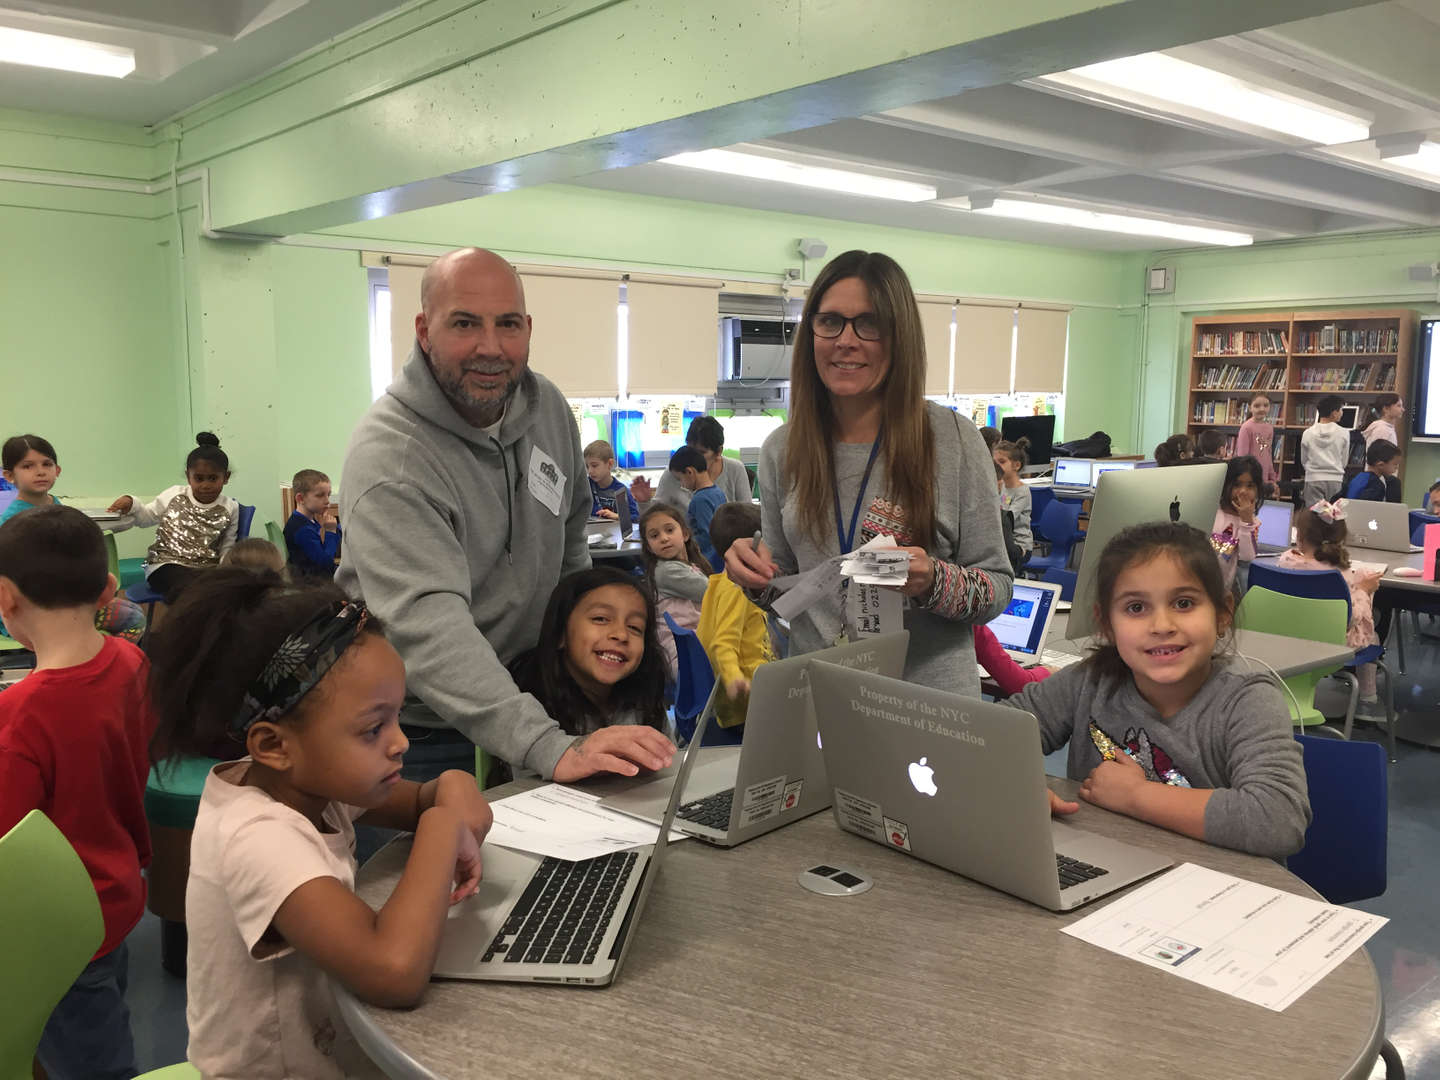 Teacher and parent helping the students in the media center